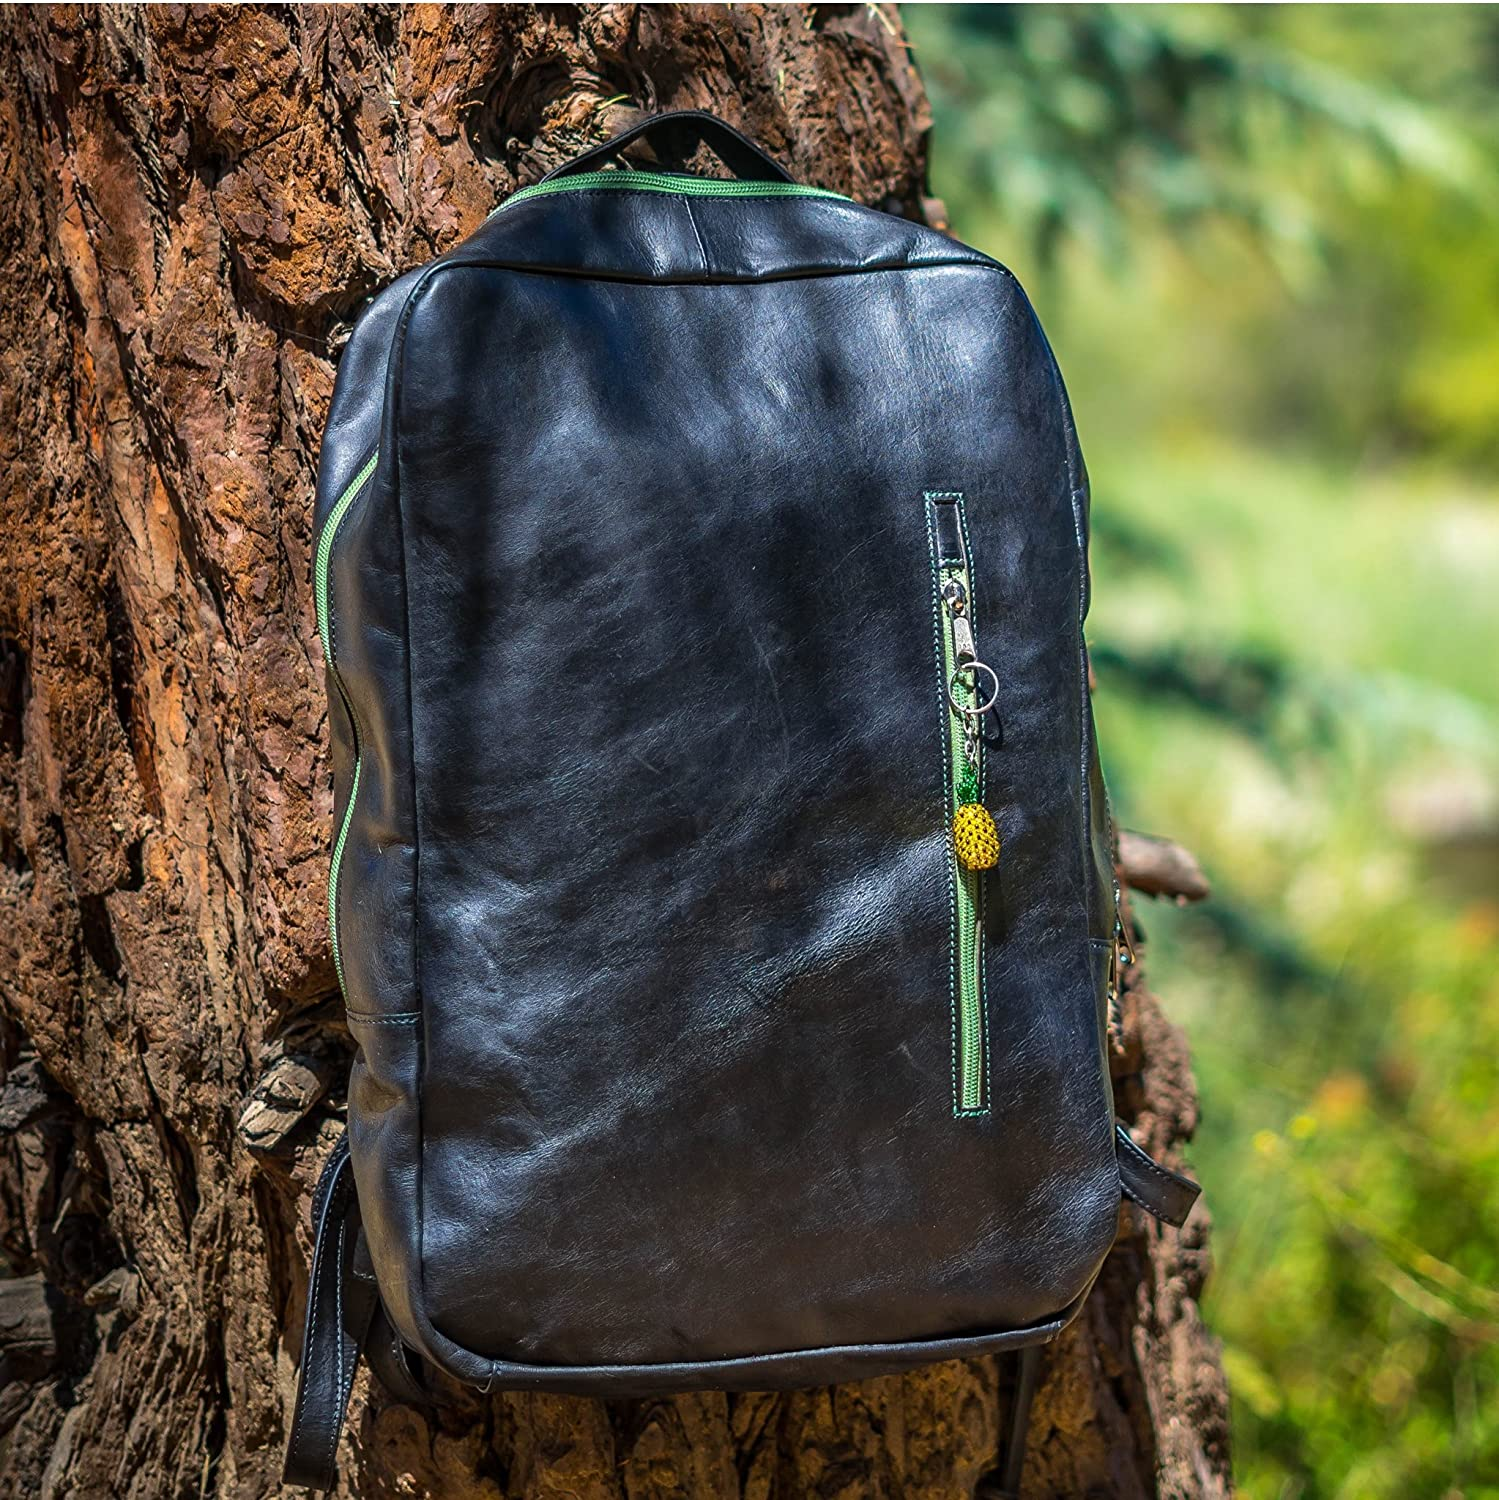 Minimalist Leather Laptop Backpack with Exotic Accents